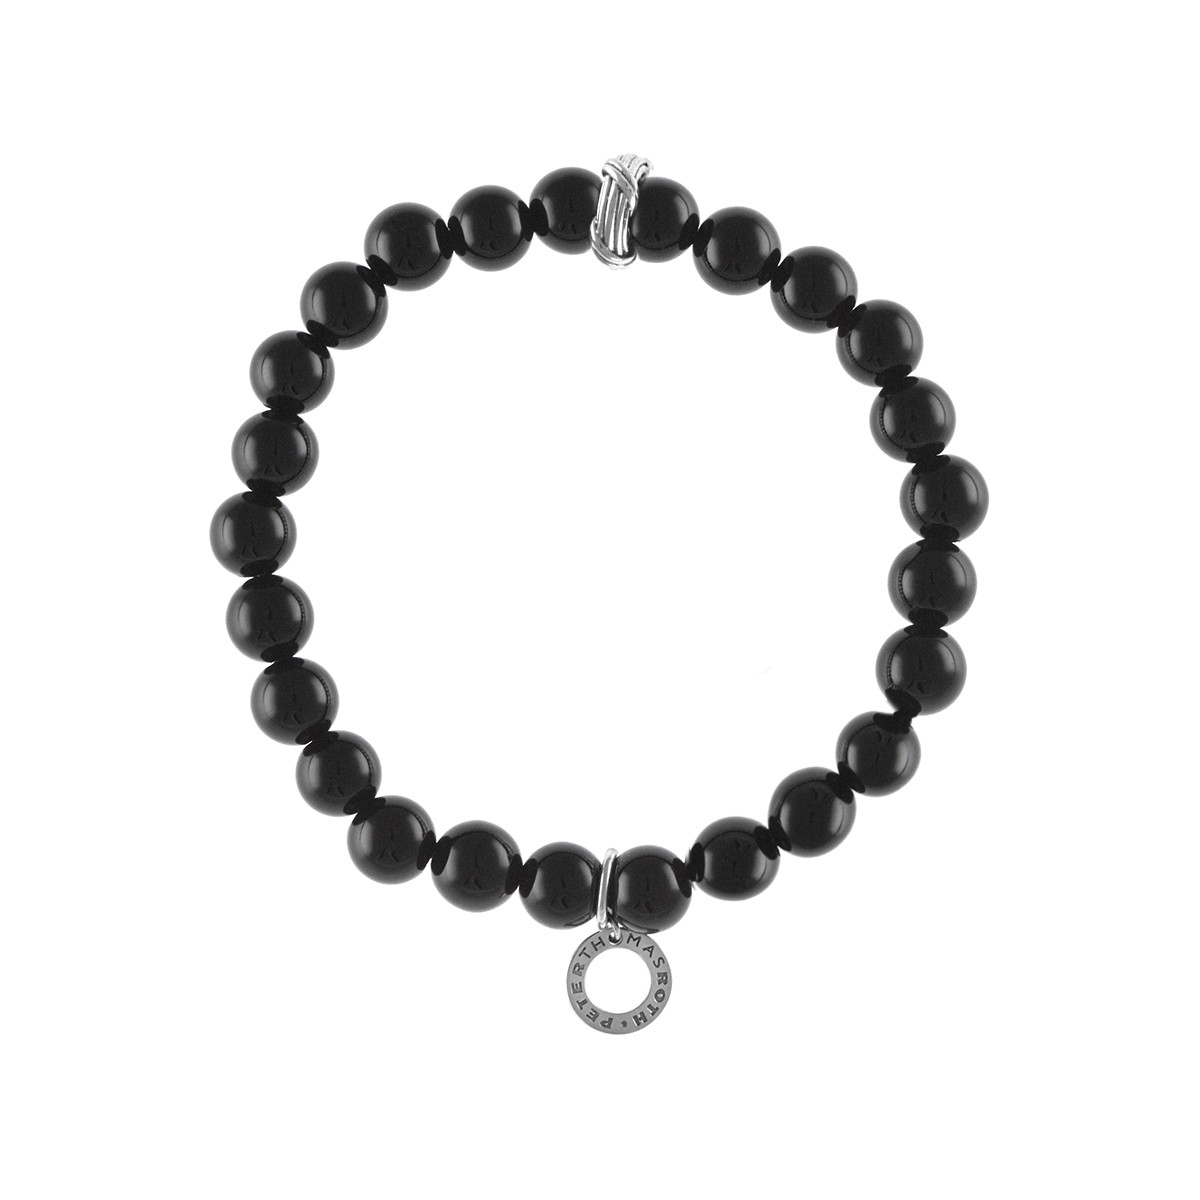 Explorer Bead Bracelet in matte black onyx and sterling silver